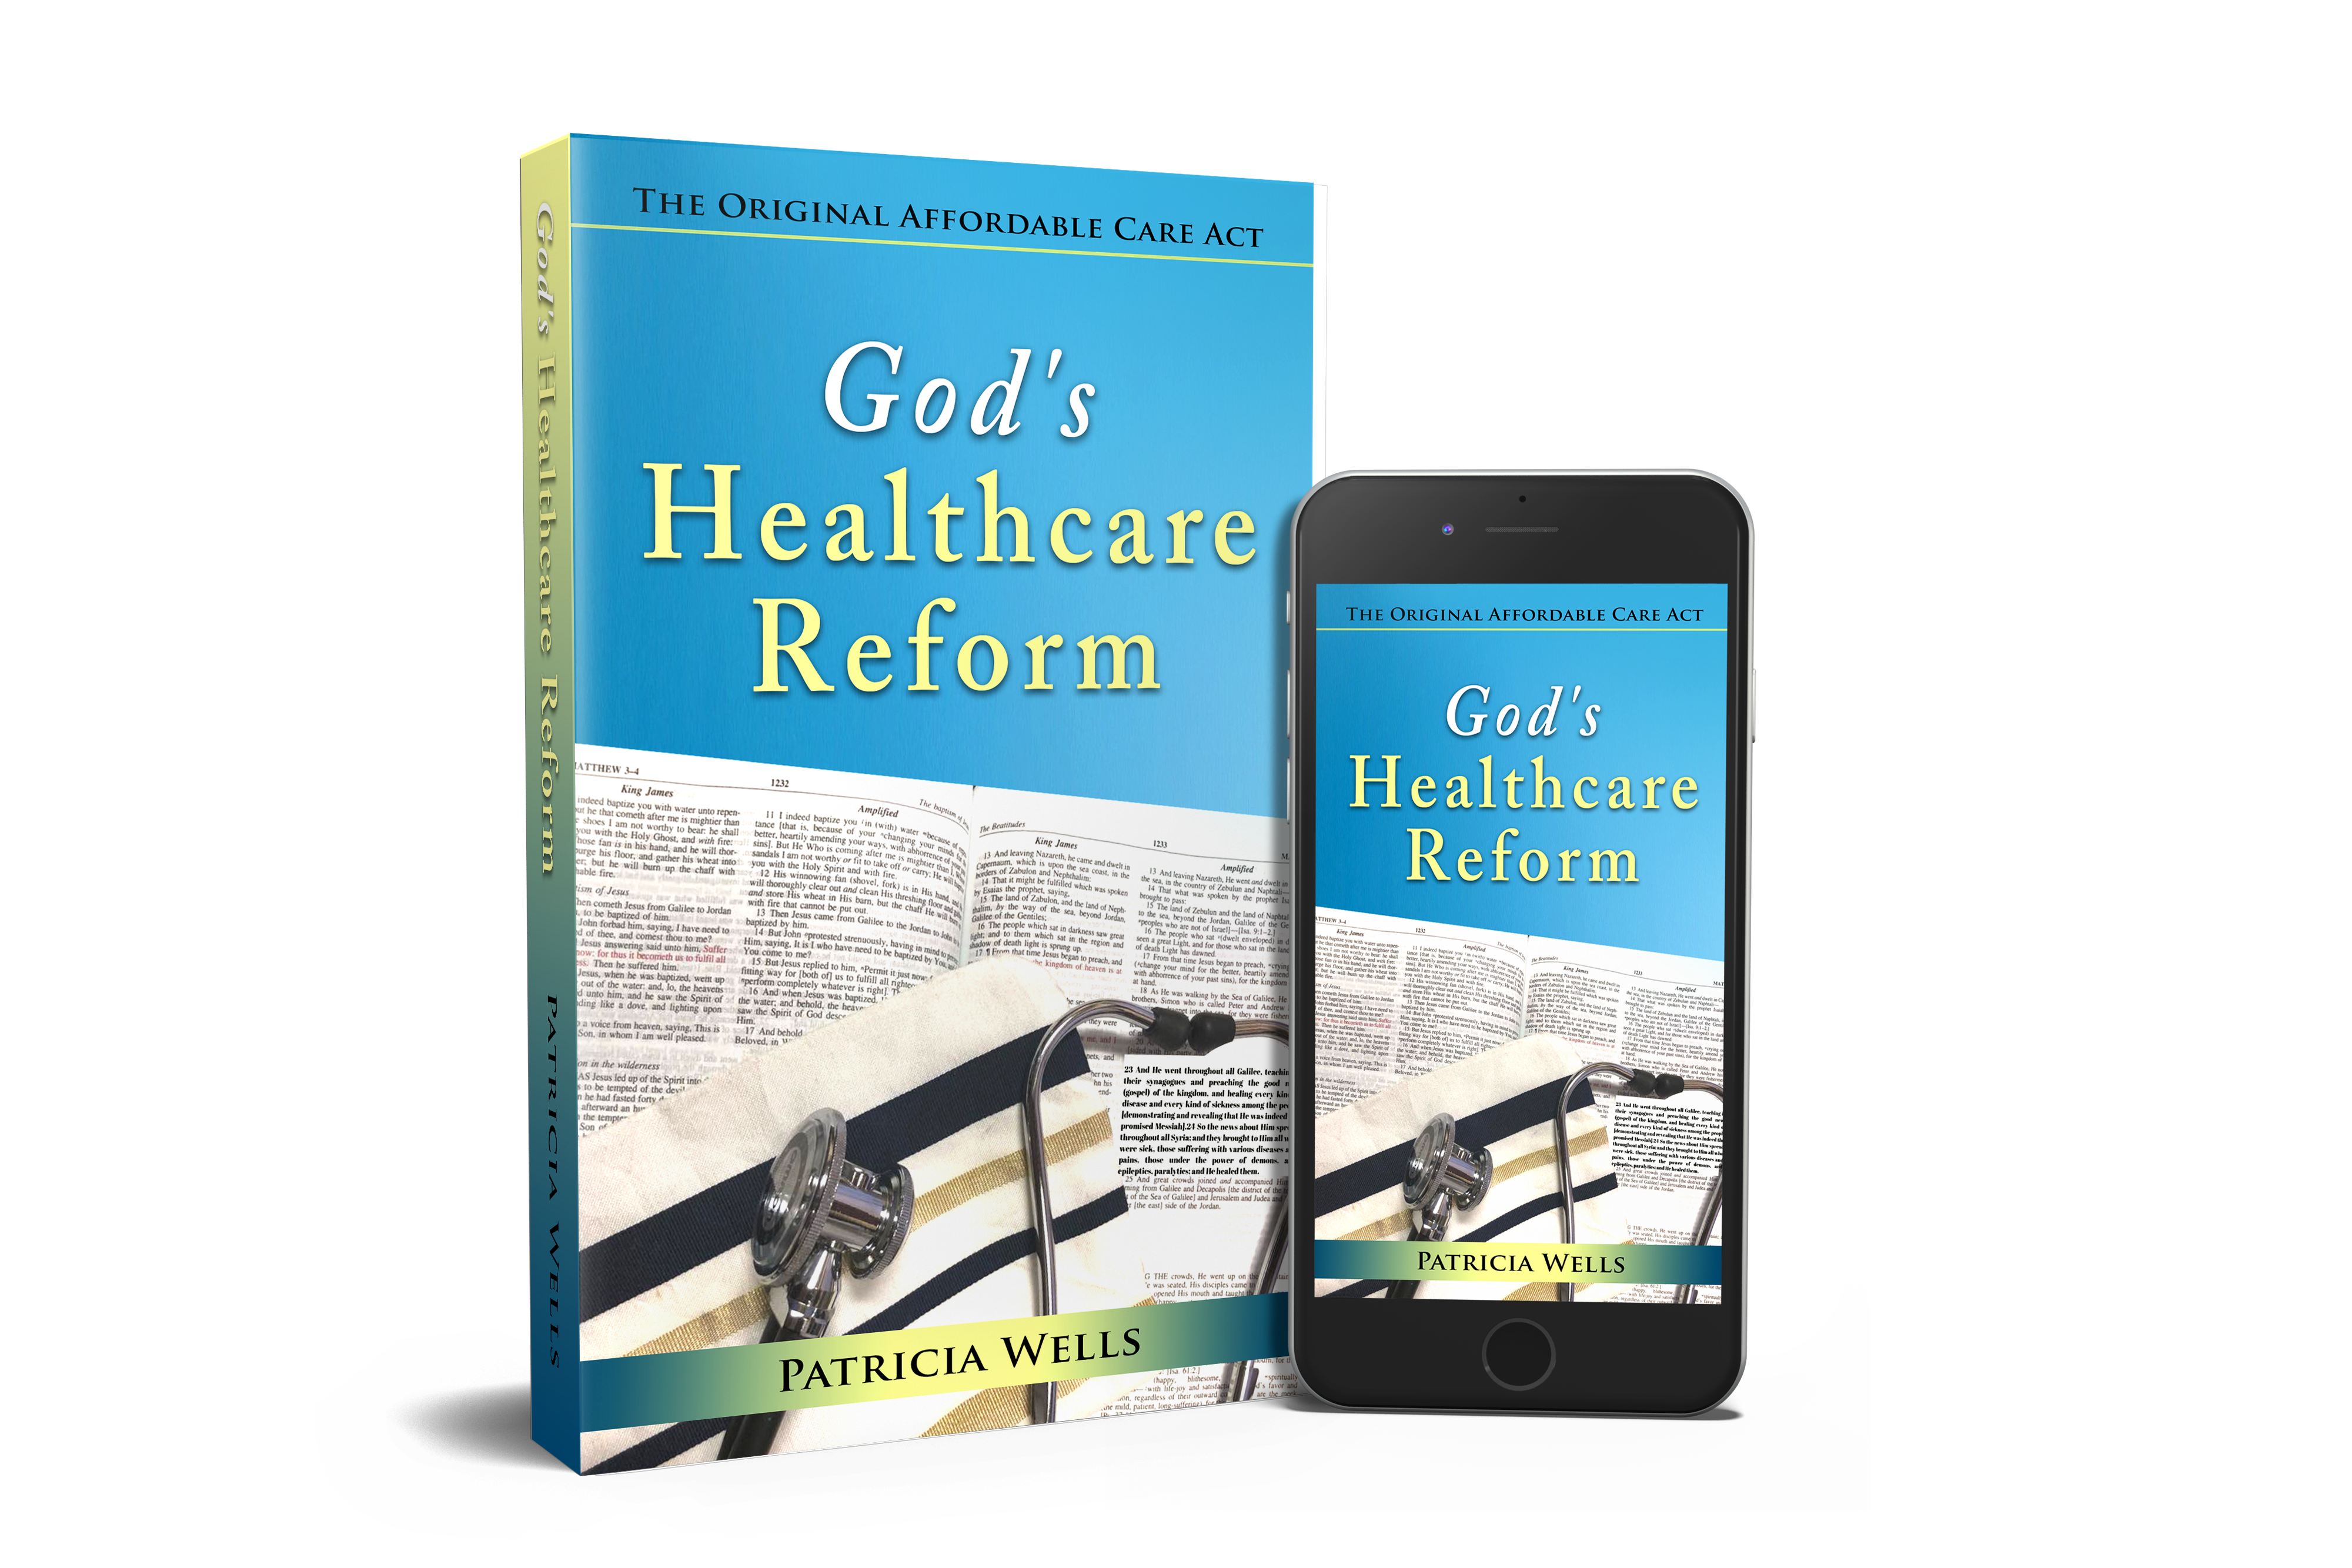 God's Healthcare Reform: The Original Affordable Care Act